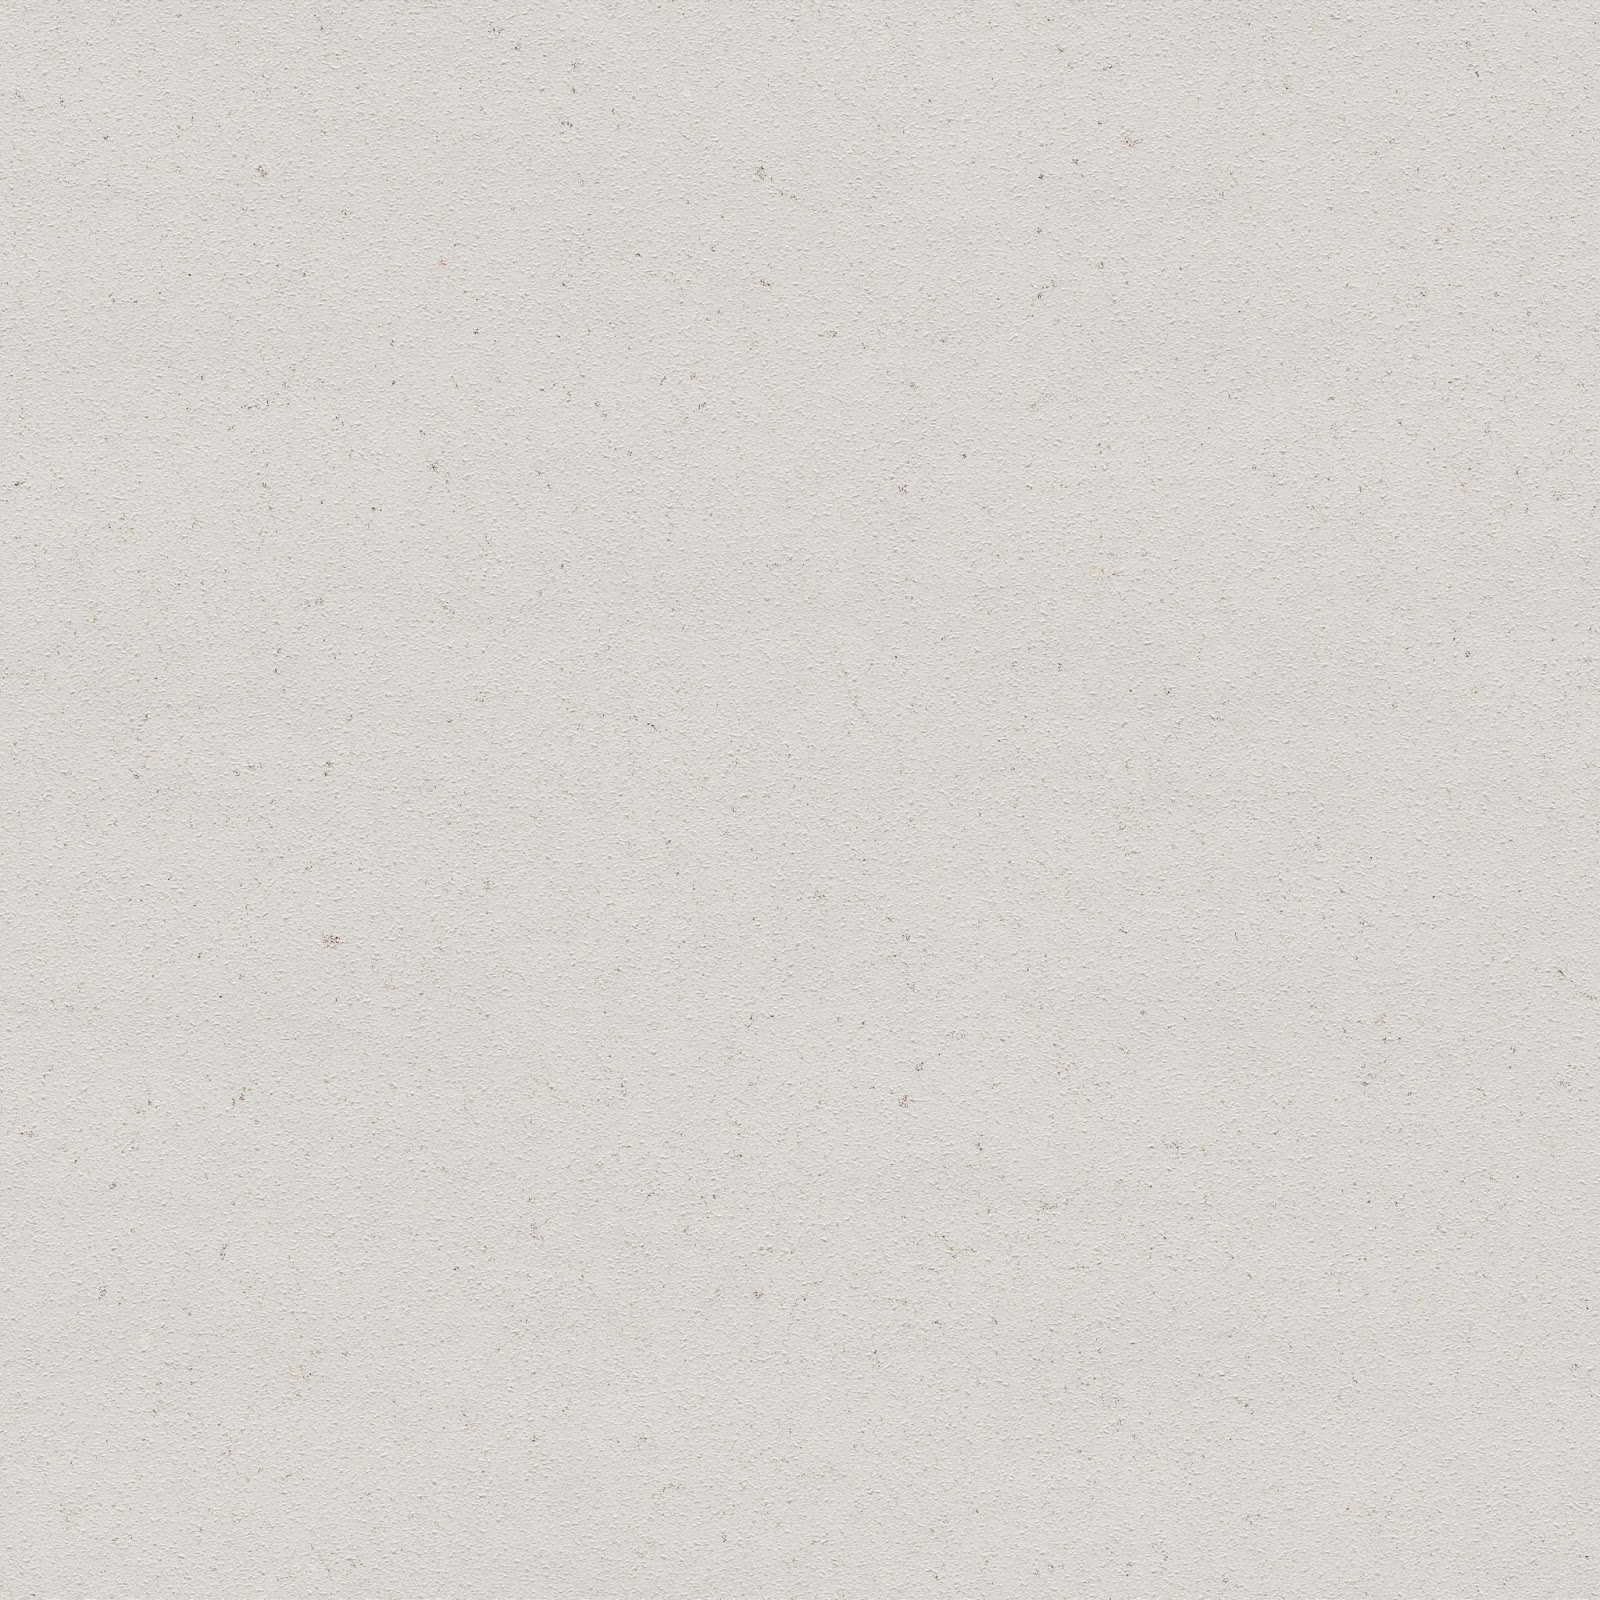 Smooth_stucco_flat_white_paint_plaster_wall_texture_seamless_tileable